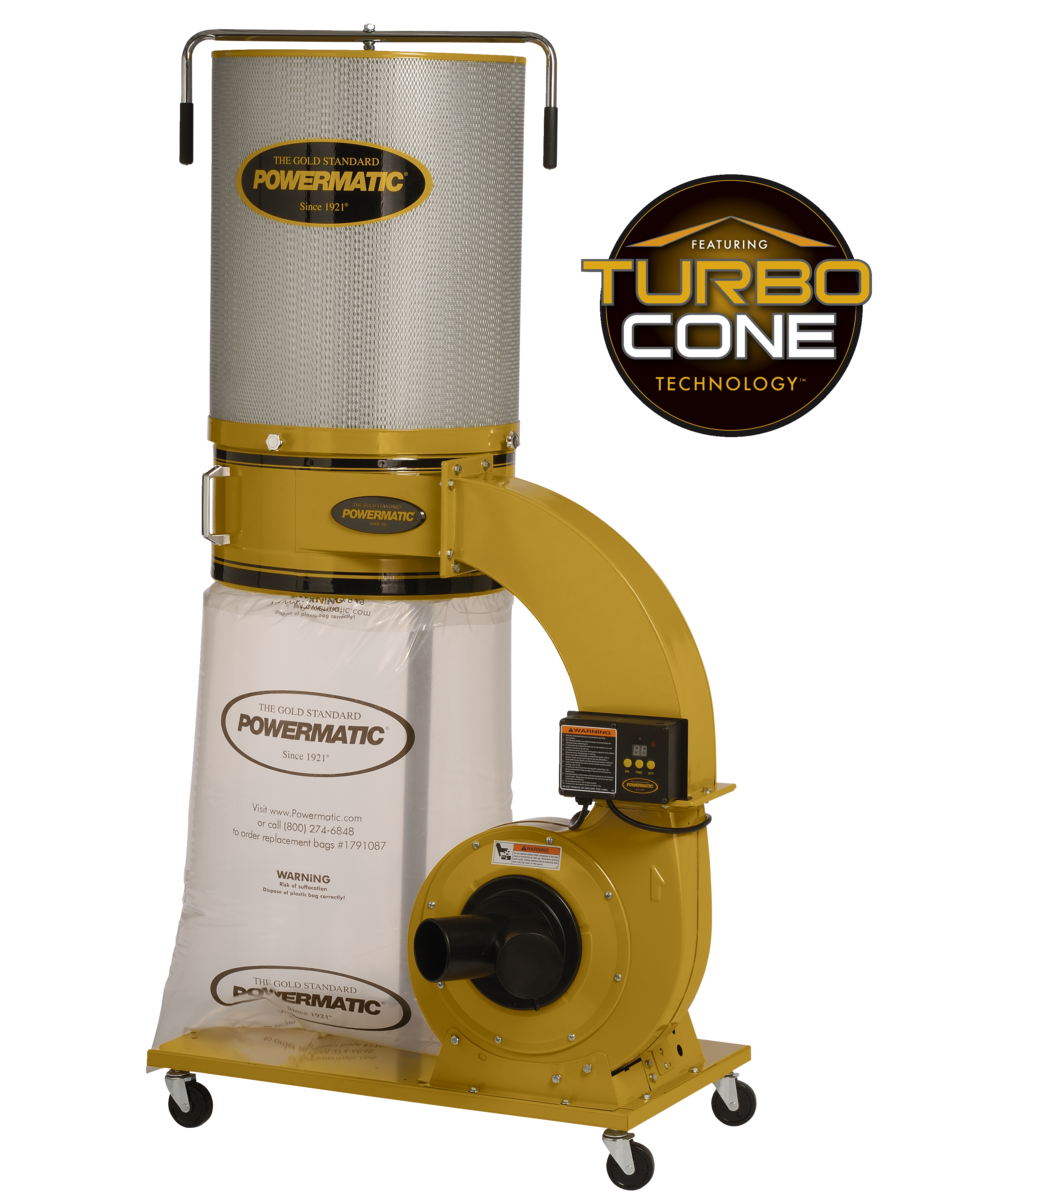 PM1300TX-CK Dust Collector, 1.75HP 1PH 115/230V, 2-Micron Canister Kit